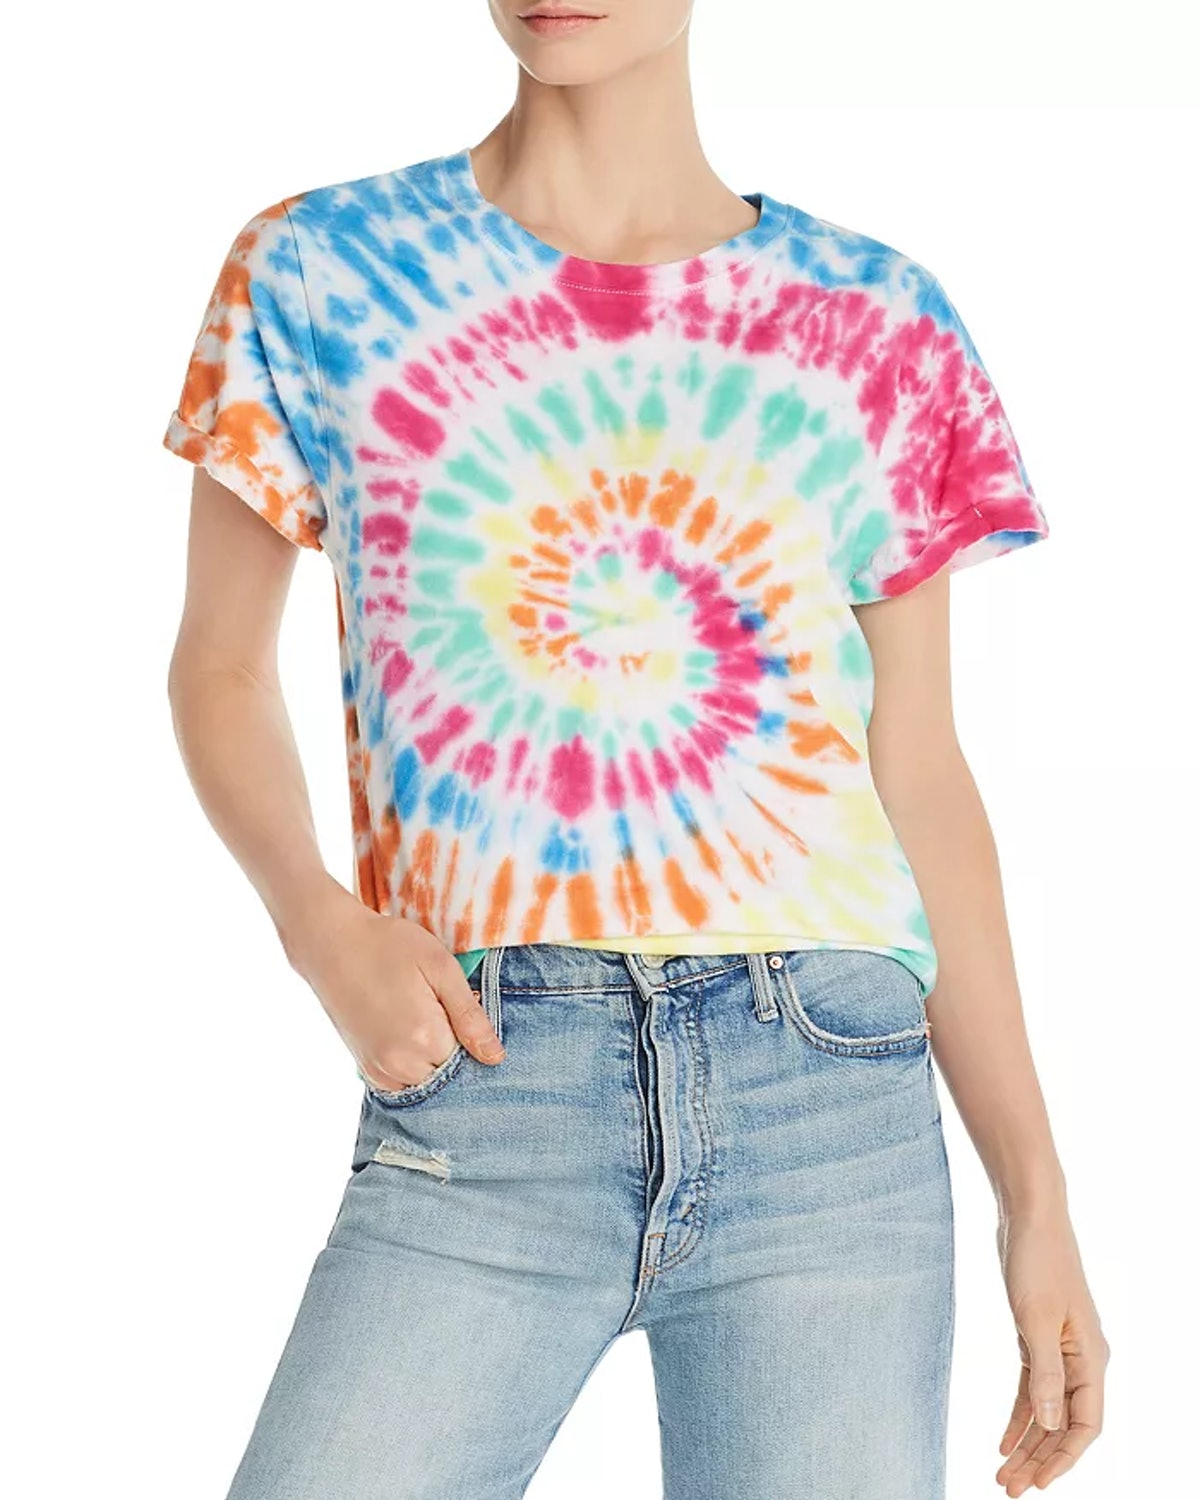 PRINCE PETER Spiral Tie-Dyed Tee